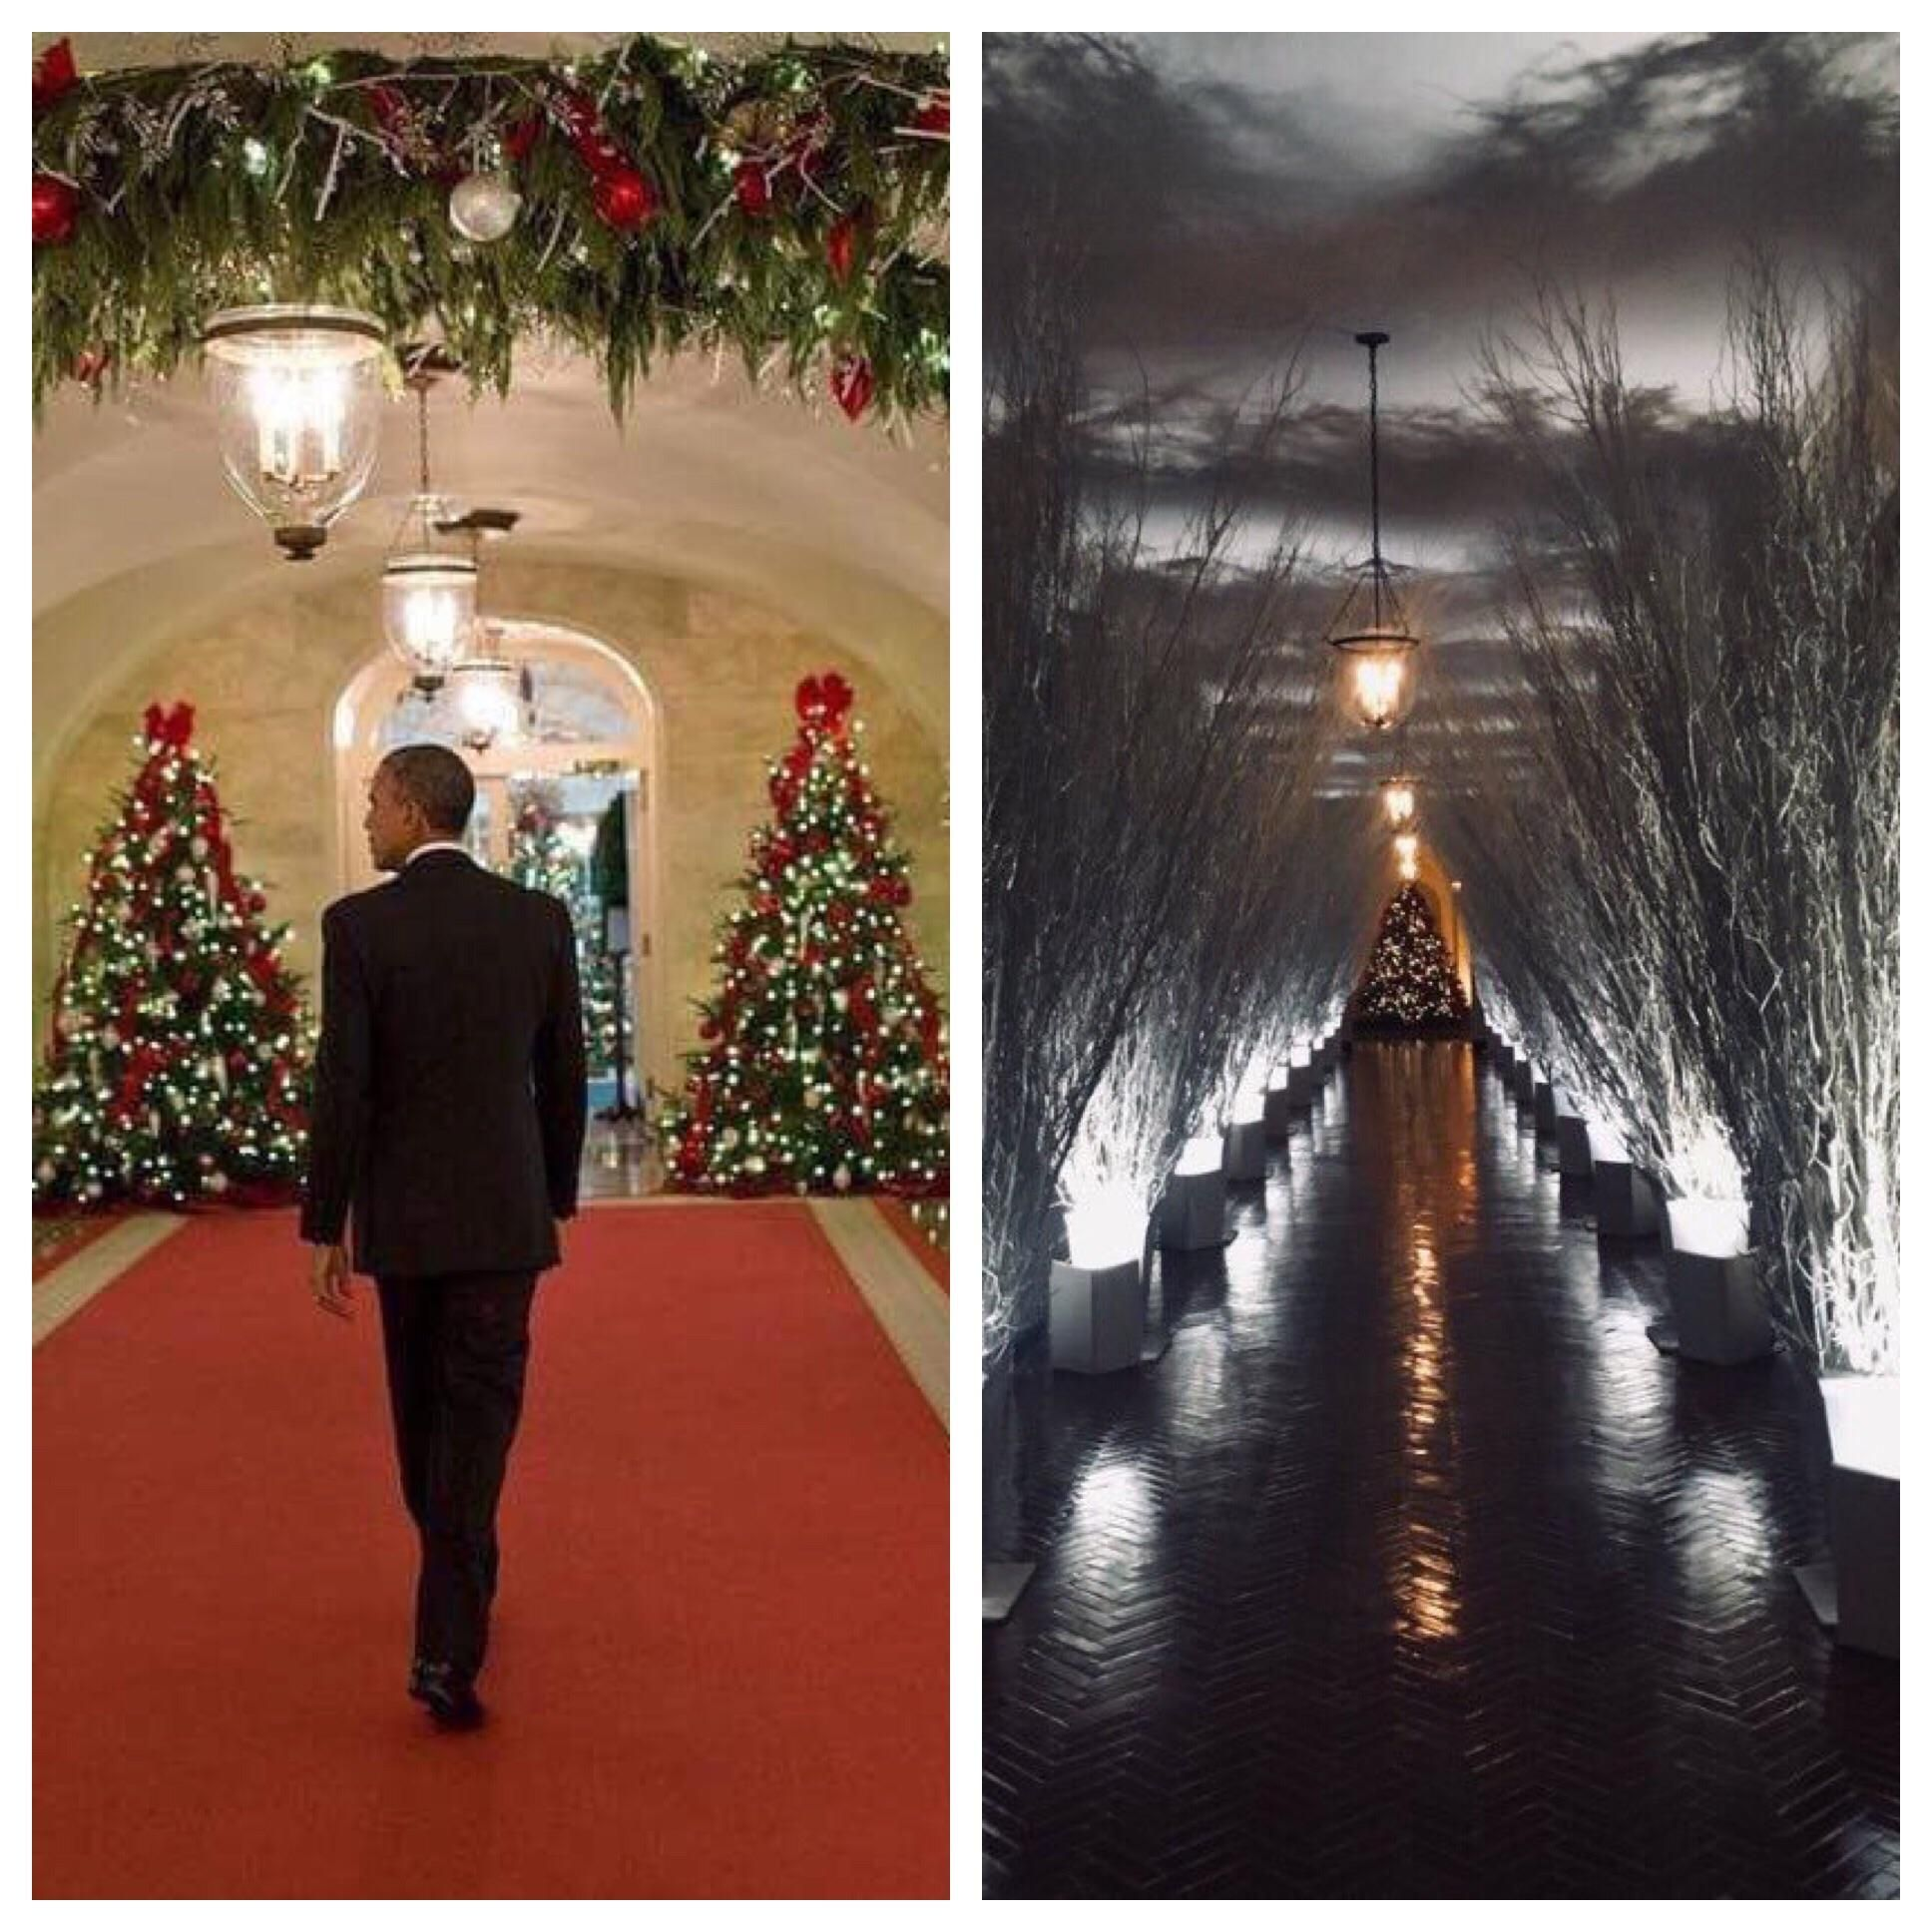 whitehouse christmas decorations obama vs trump - Obama Christmas Decorations